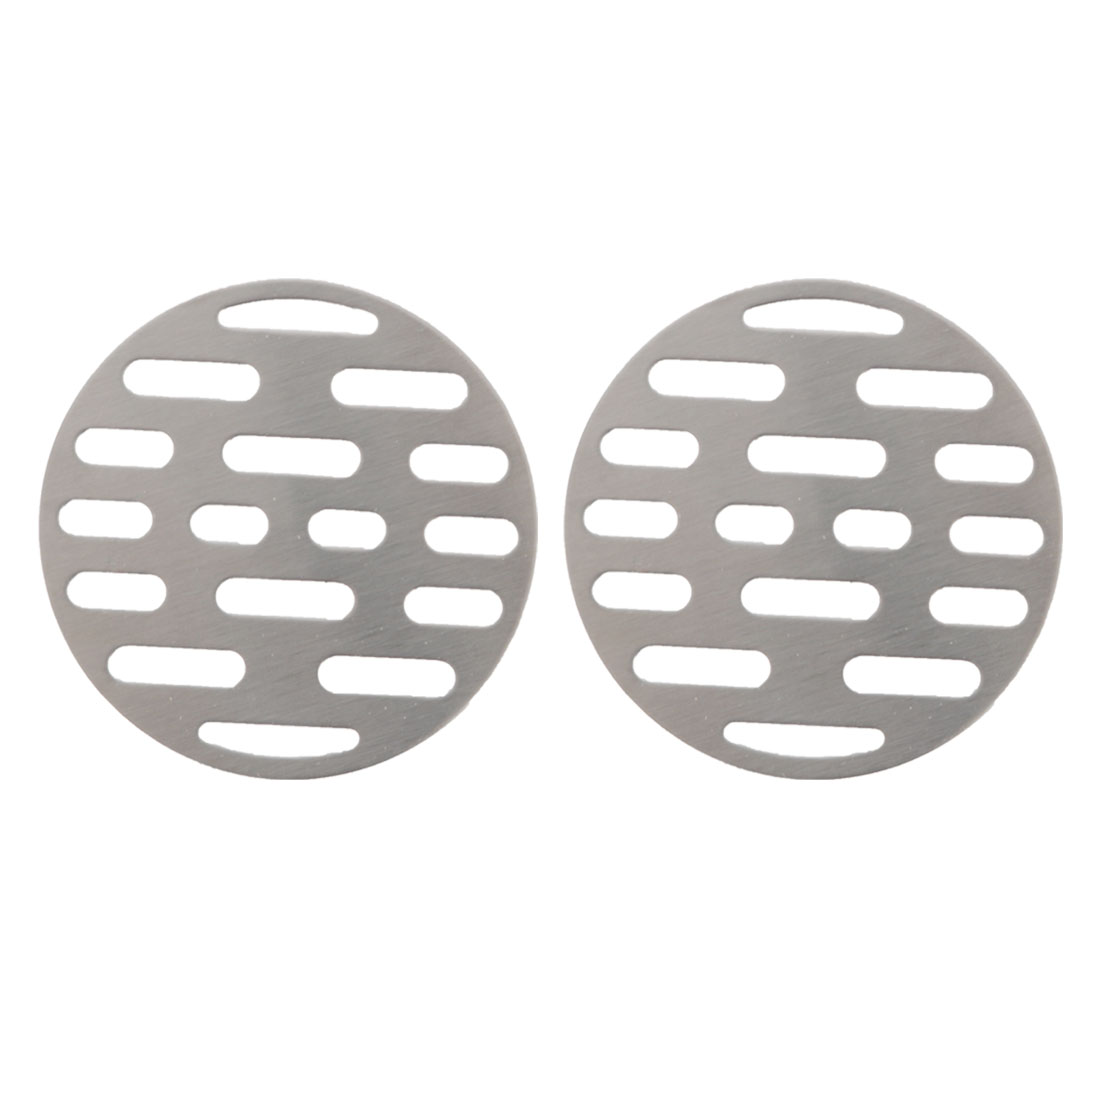 "2pcs 2.64"" Floor Drain Cover Hair Catcher Sink Filter Stopper Bathroom Kitchen"